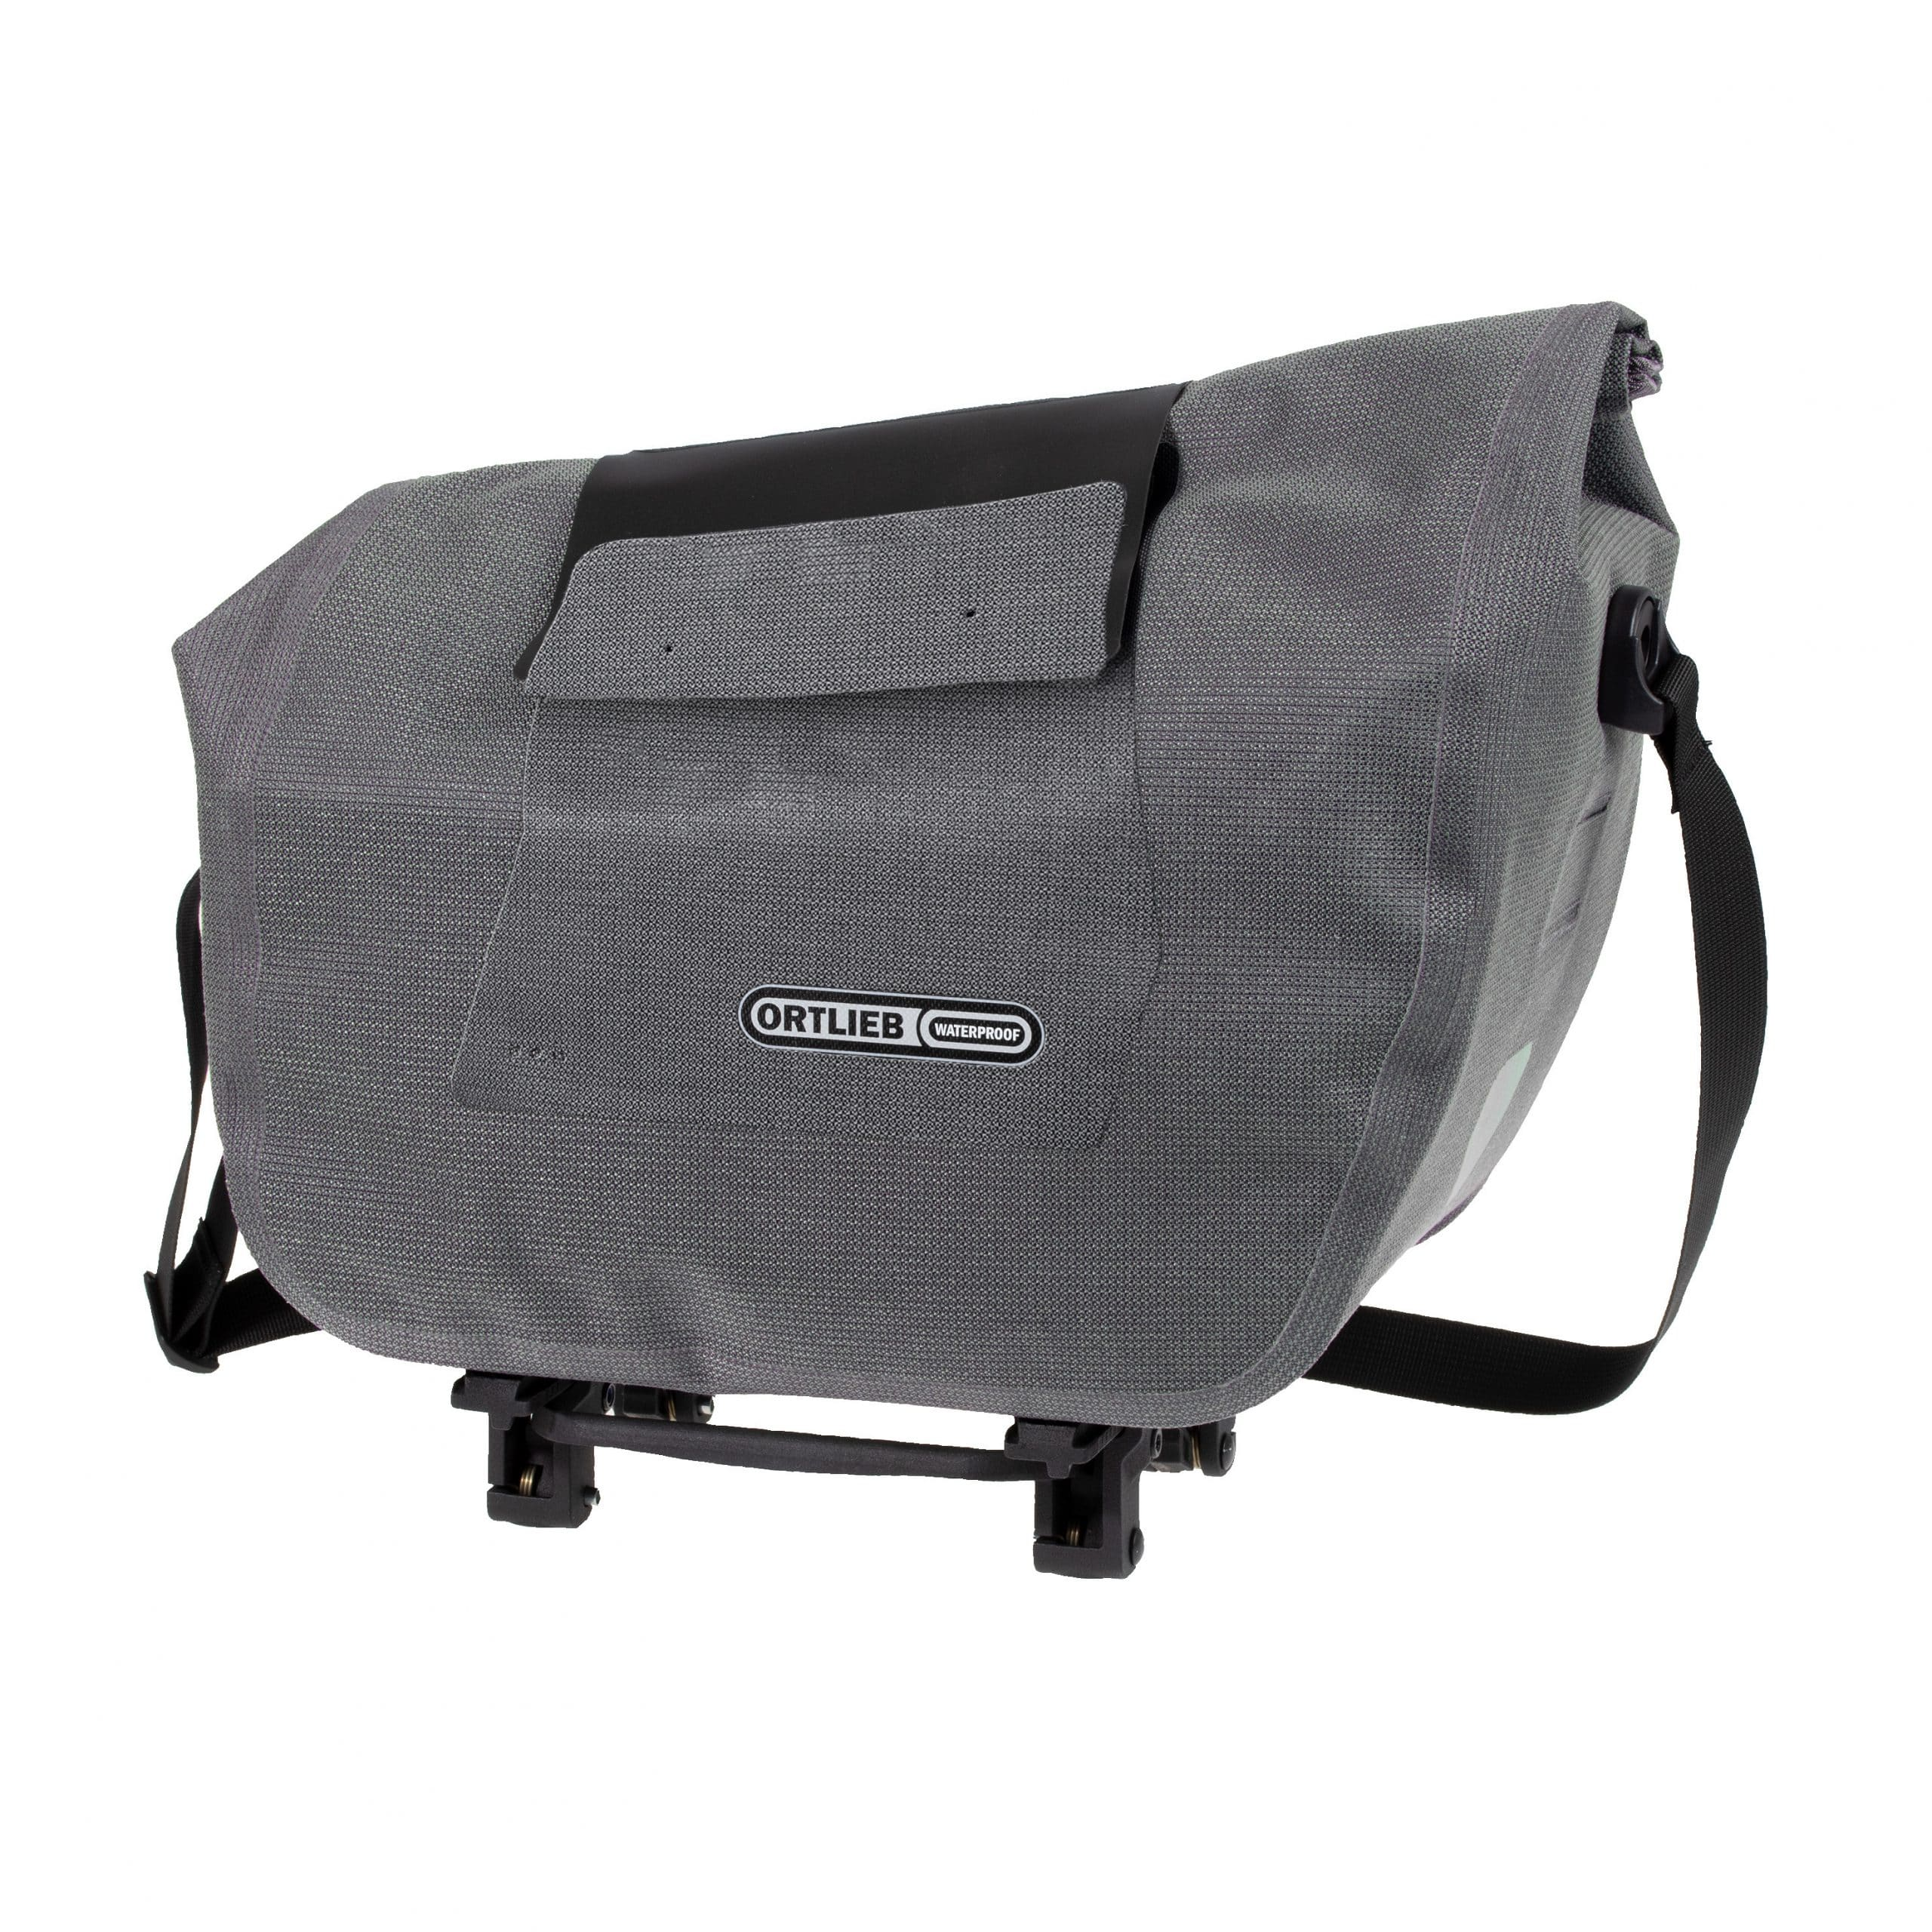 Ortlieb Trunk-Bag RC Urban